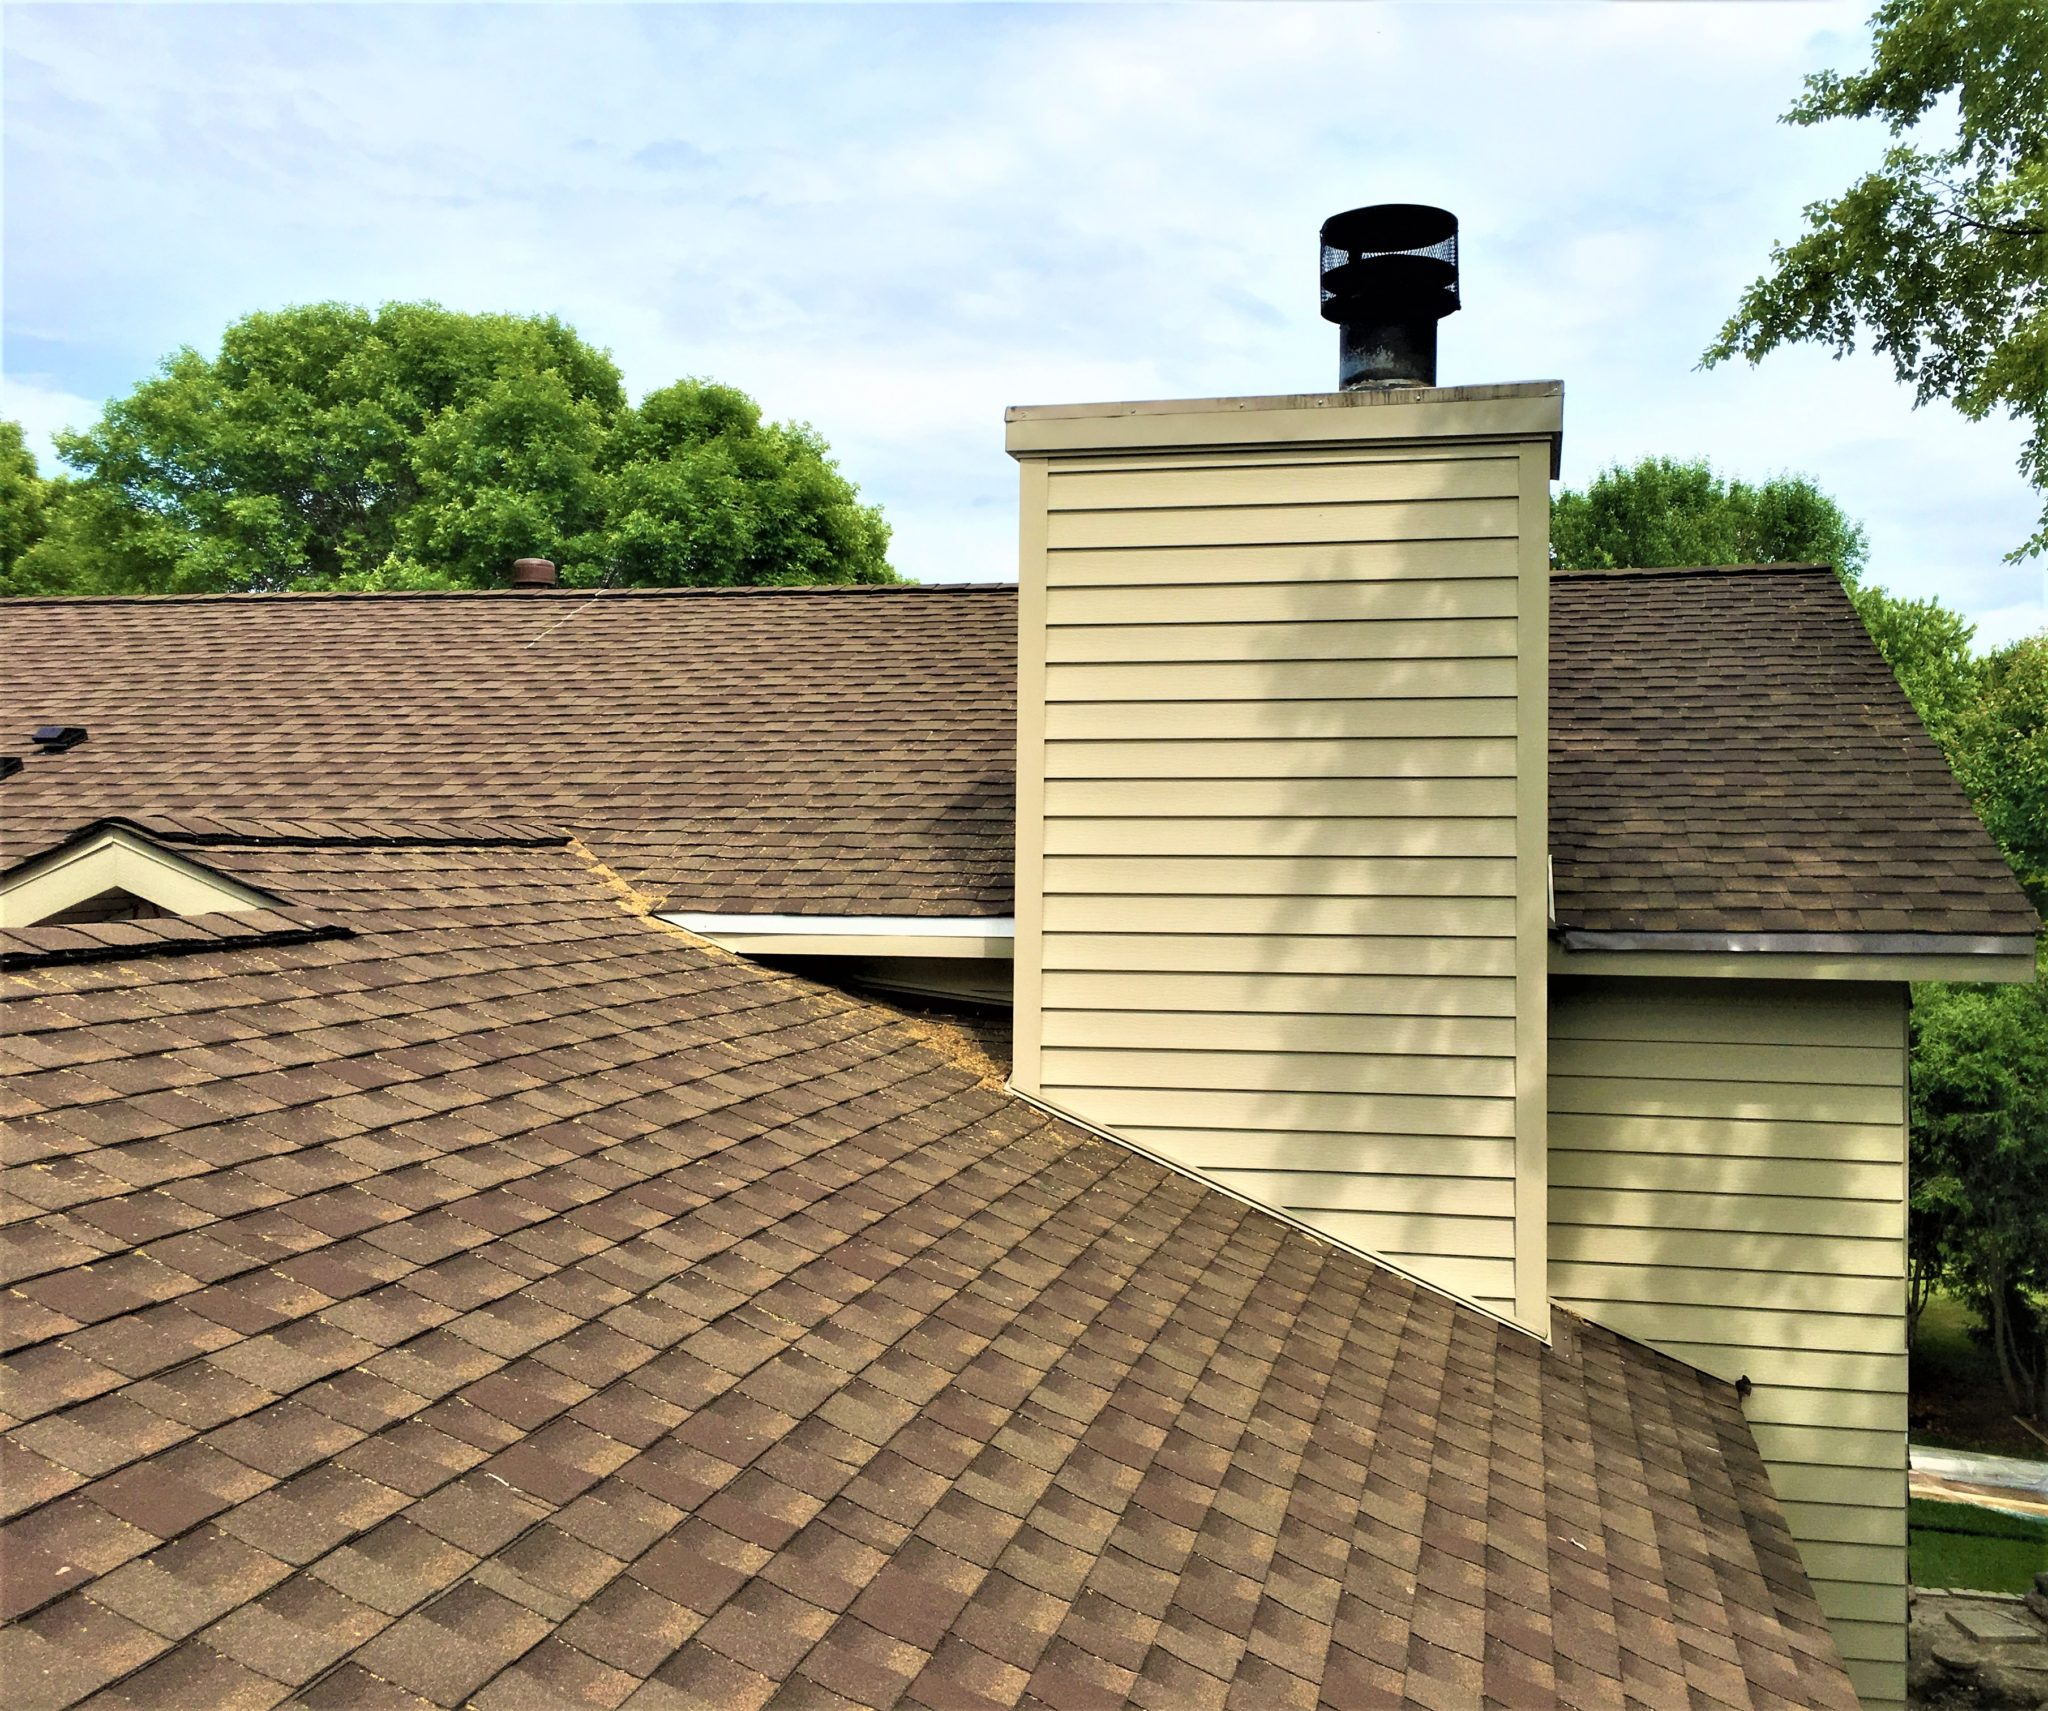 Gaf Timberline roof